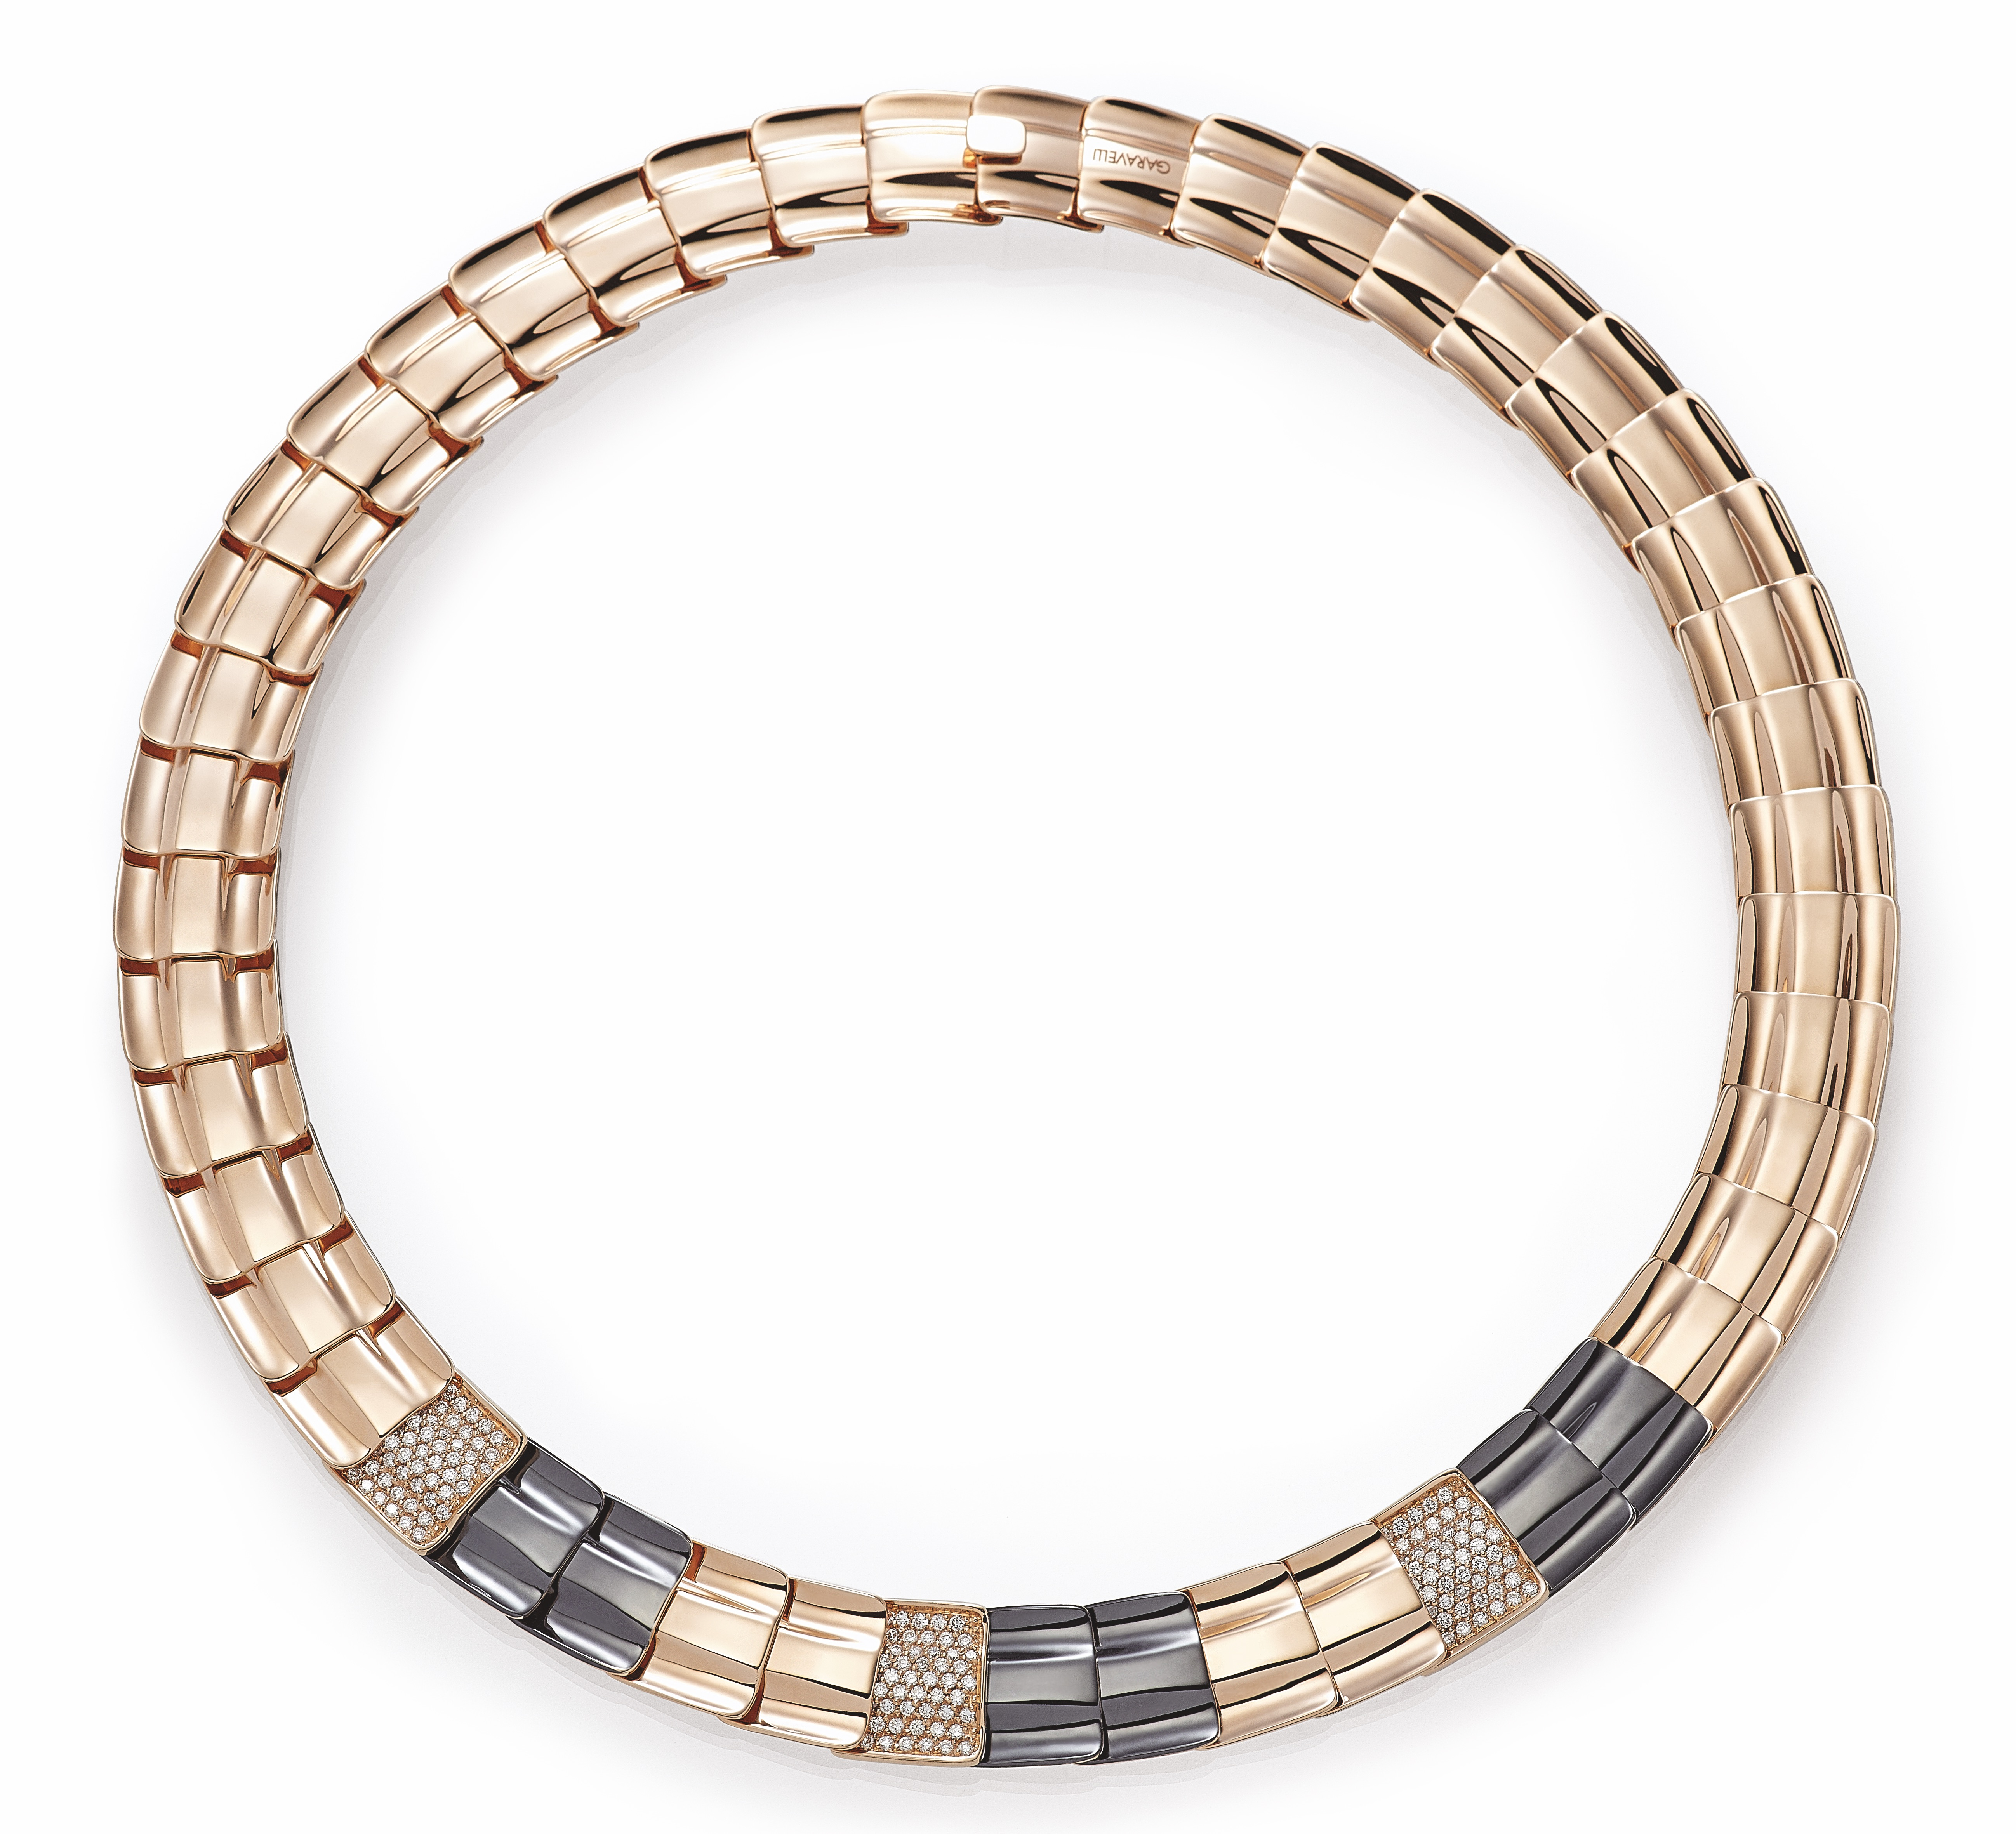 Garavelli Drago collection collier | JCK On Your Market